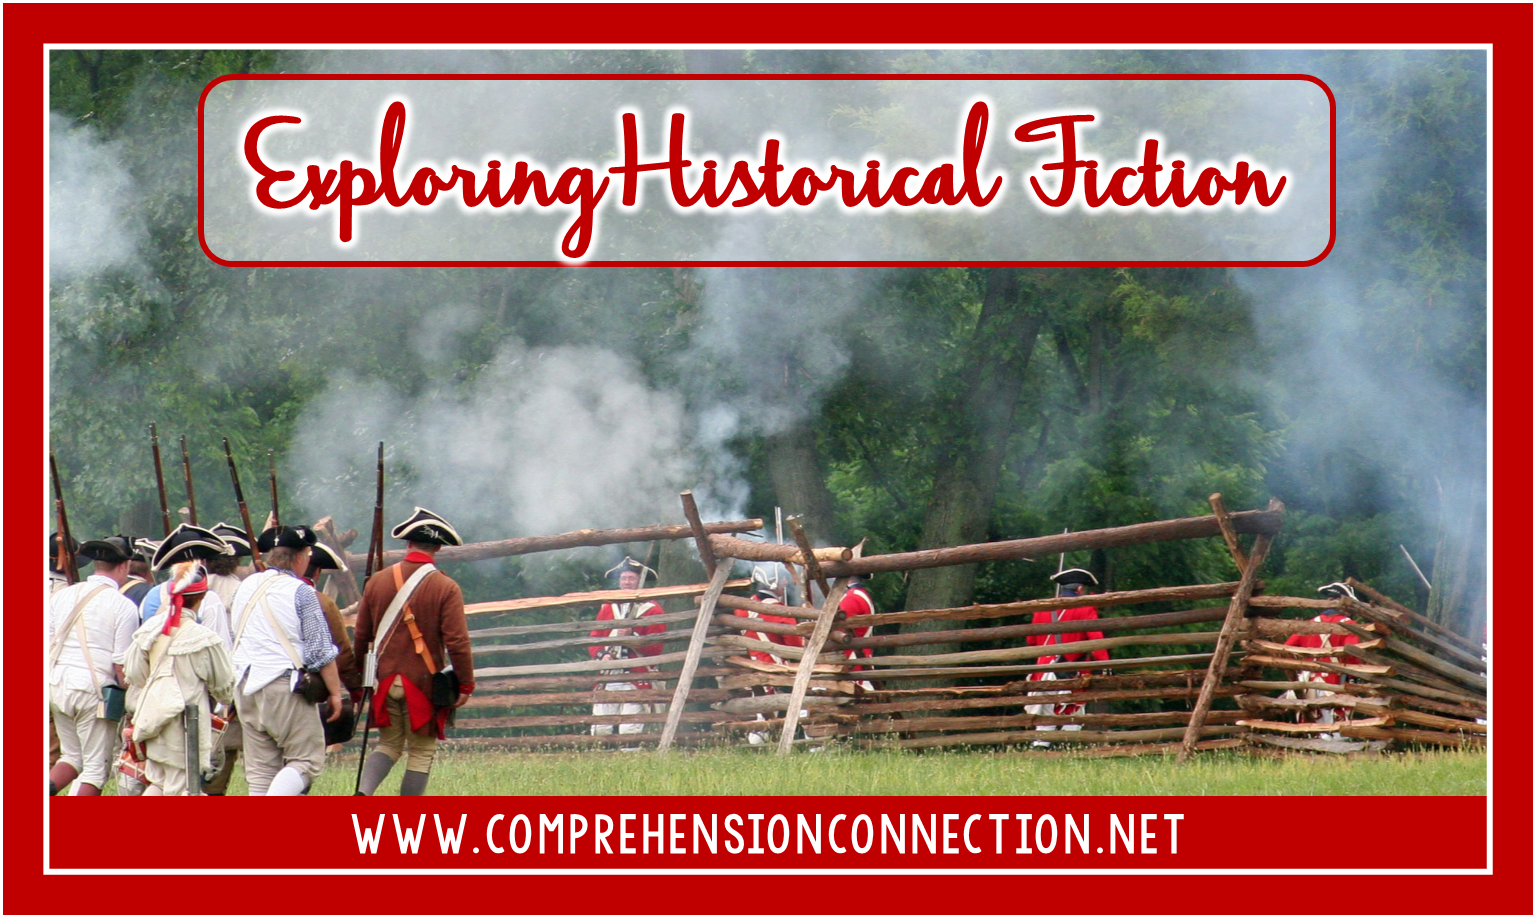 Teaching literature genres and the features each genre includes is important for student comprehension. In this post, ideas and resources are shared for exploring historical fiction.